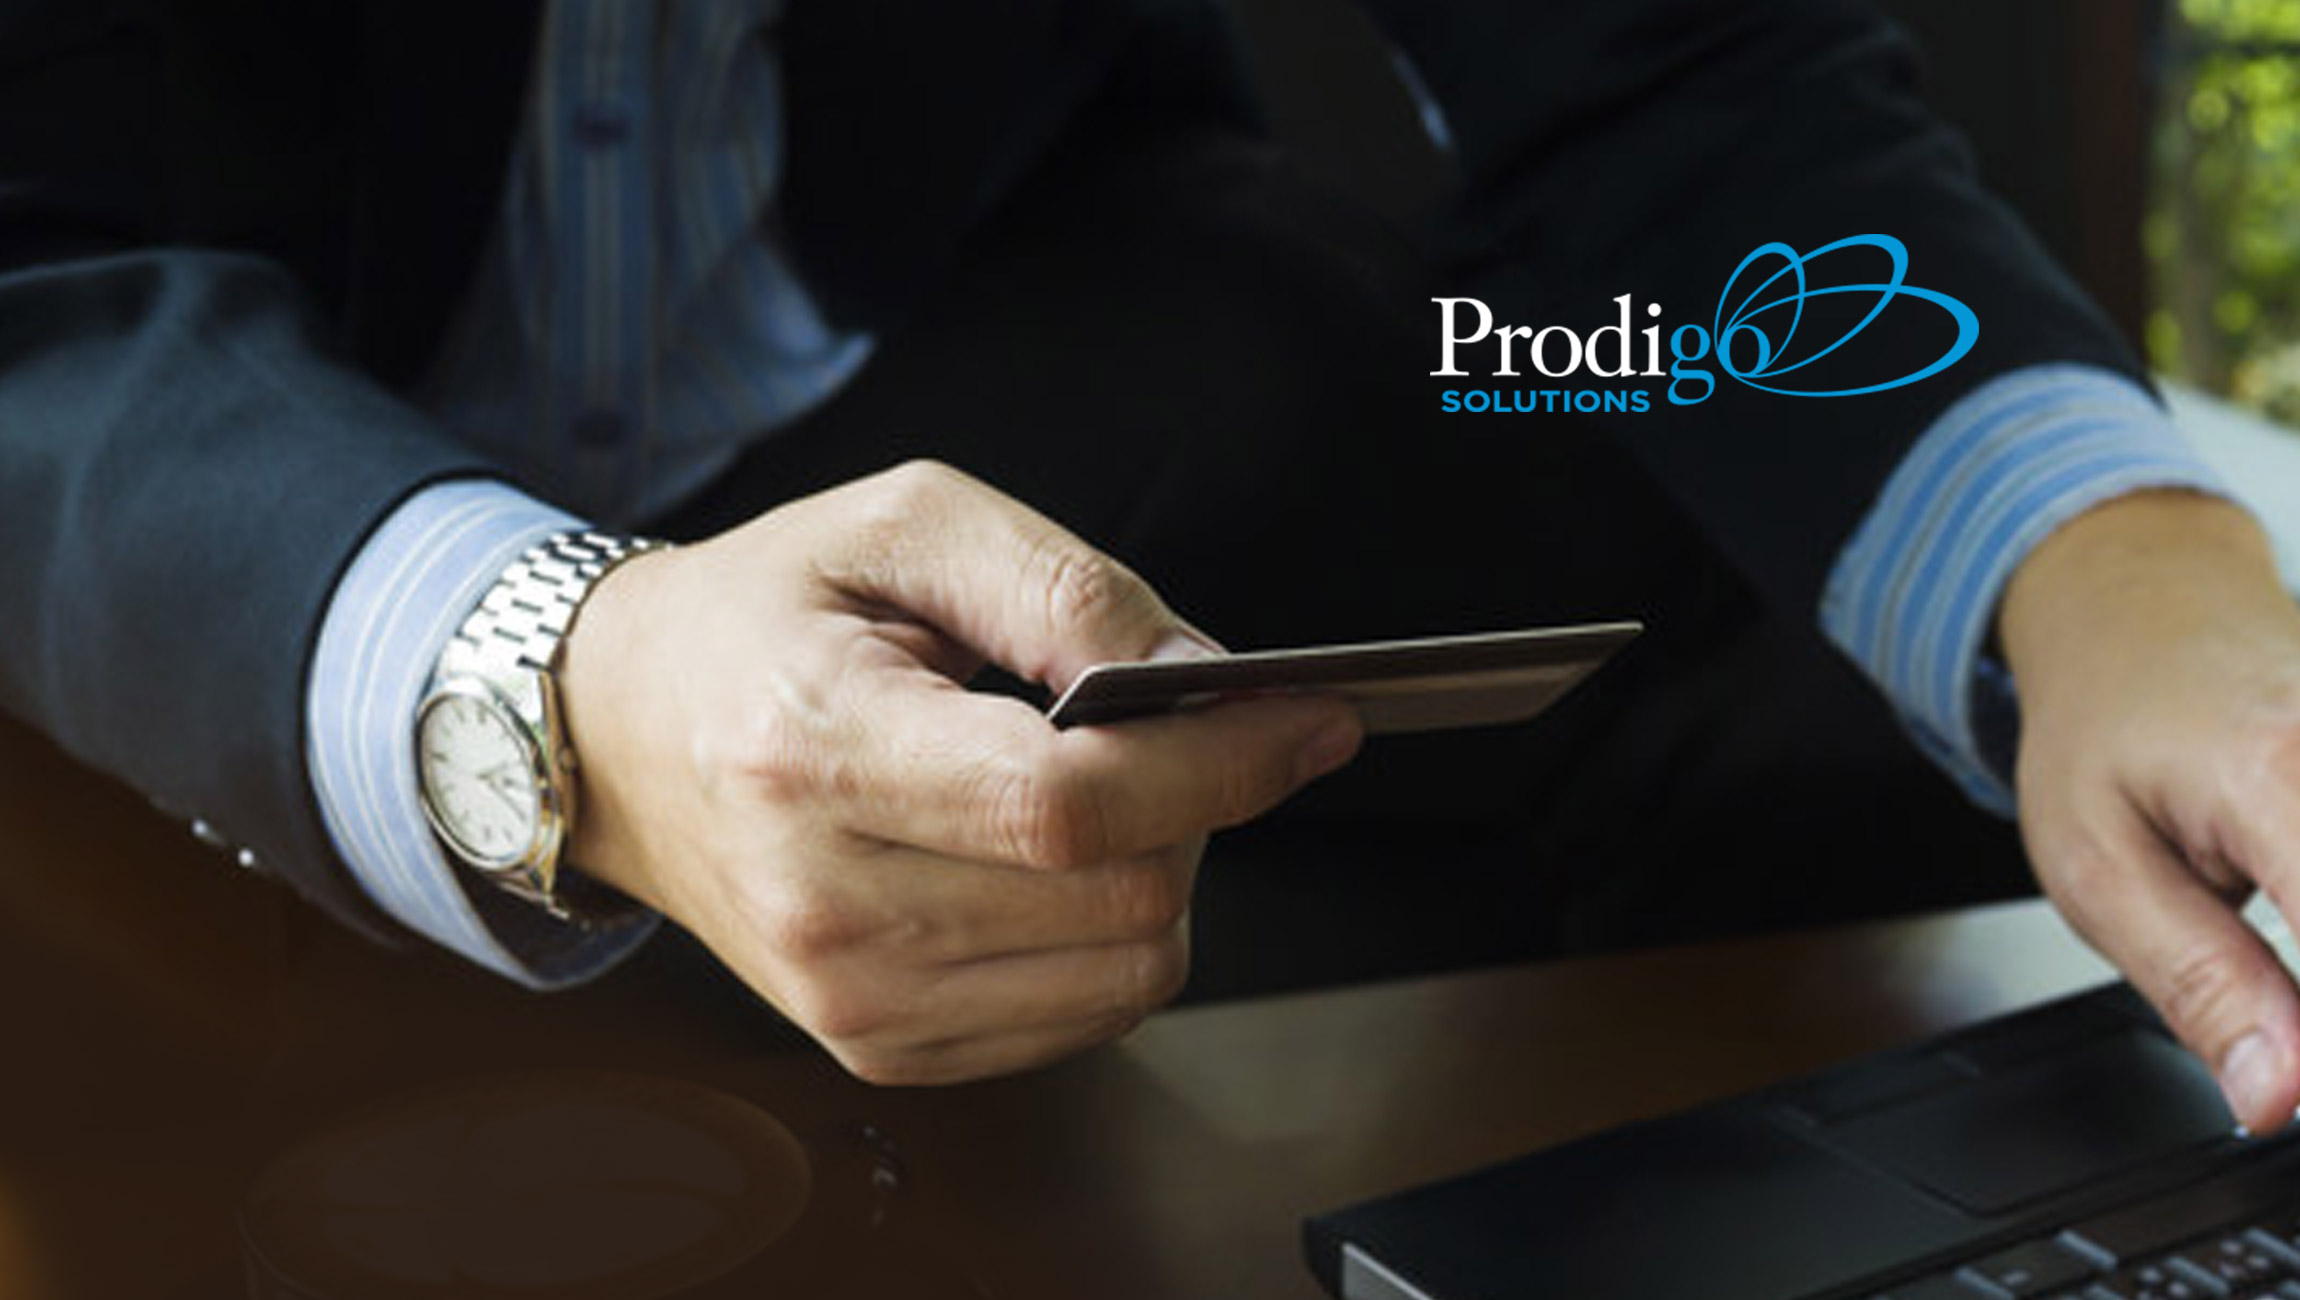 Prodigo Solutions Teams up with Amazon Business for Ecommerce Integration